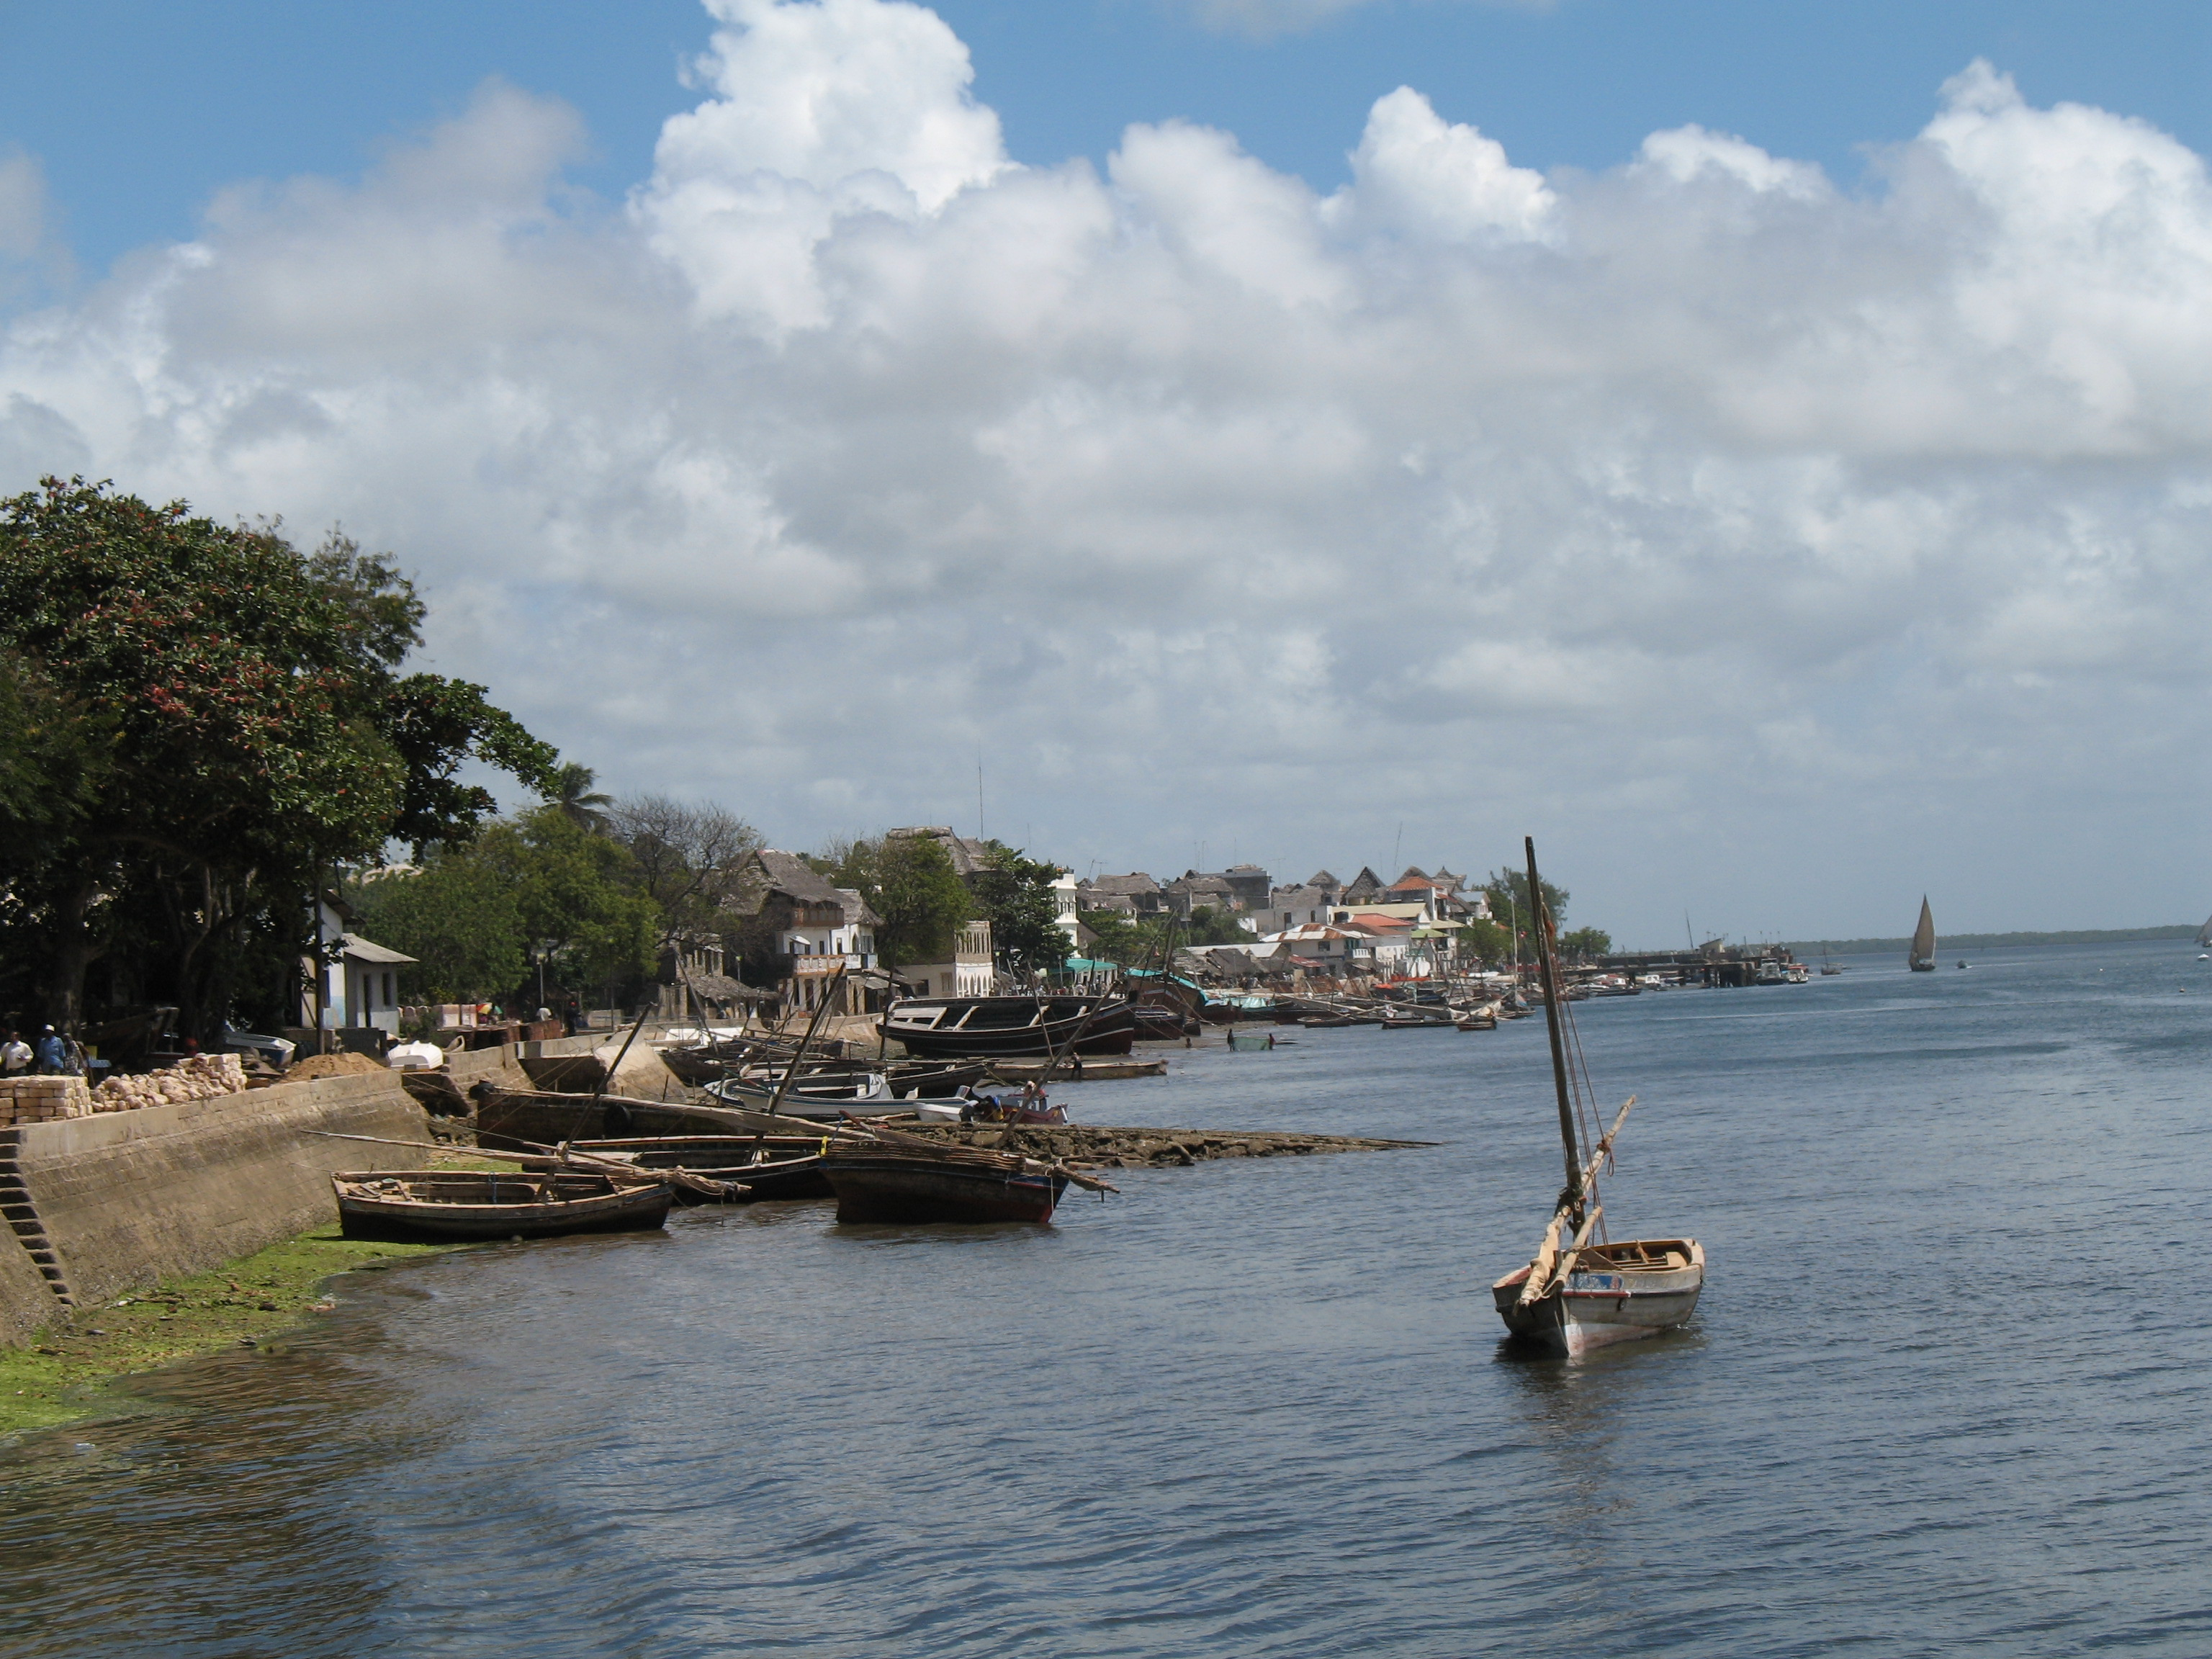 Lamu Island Kenya  city photos gallery : Lamu town on Lamu Island in Kenya